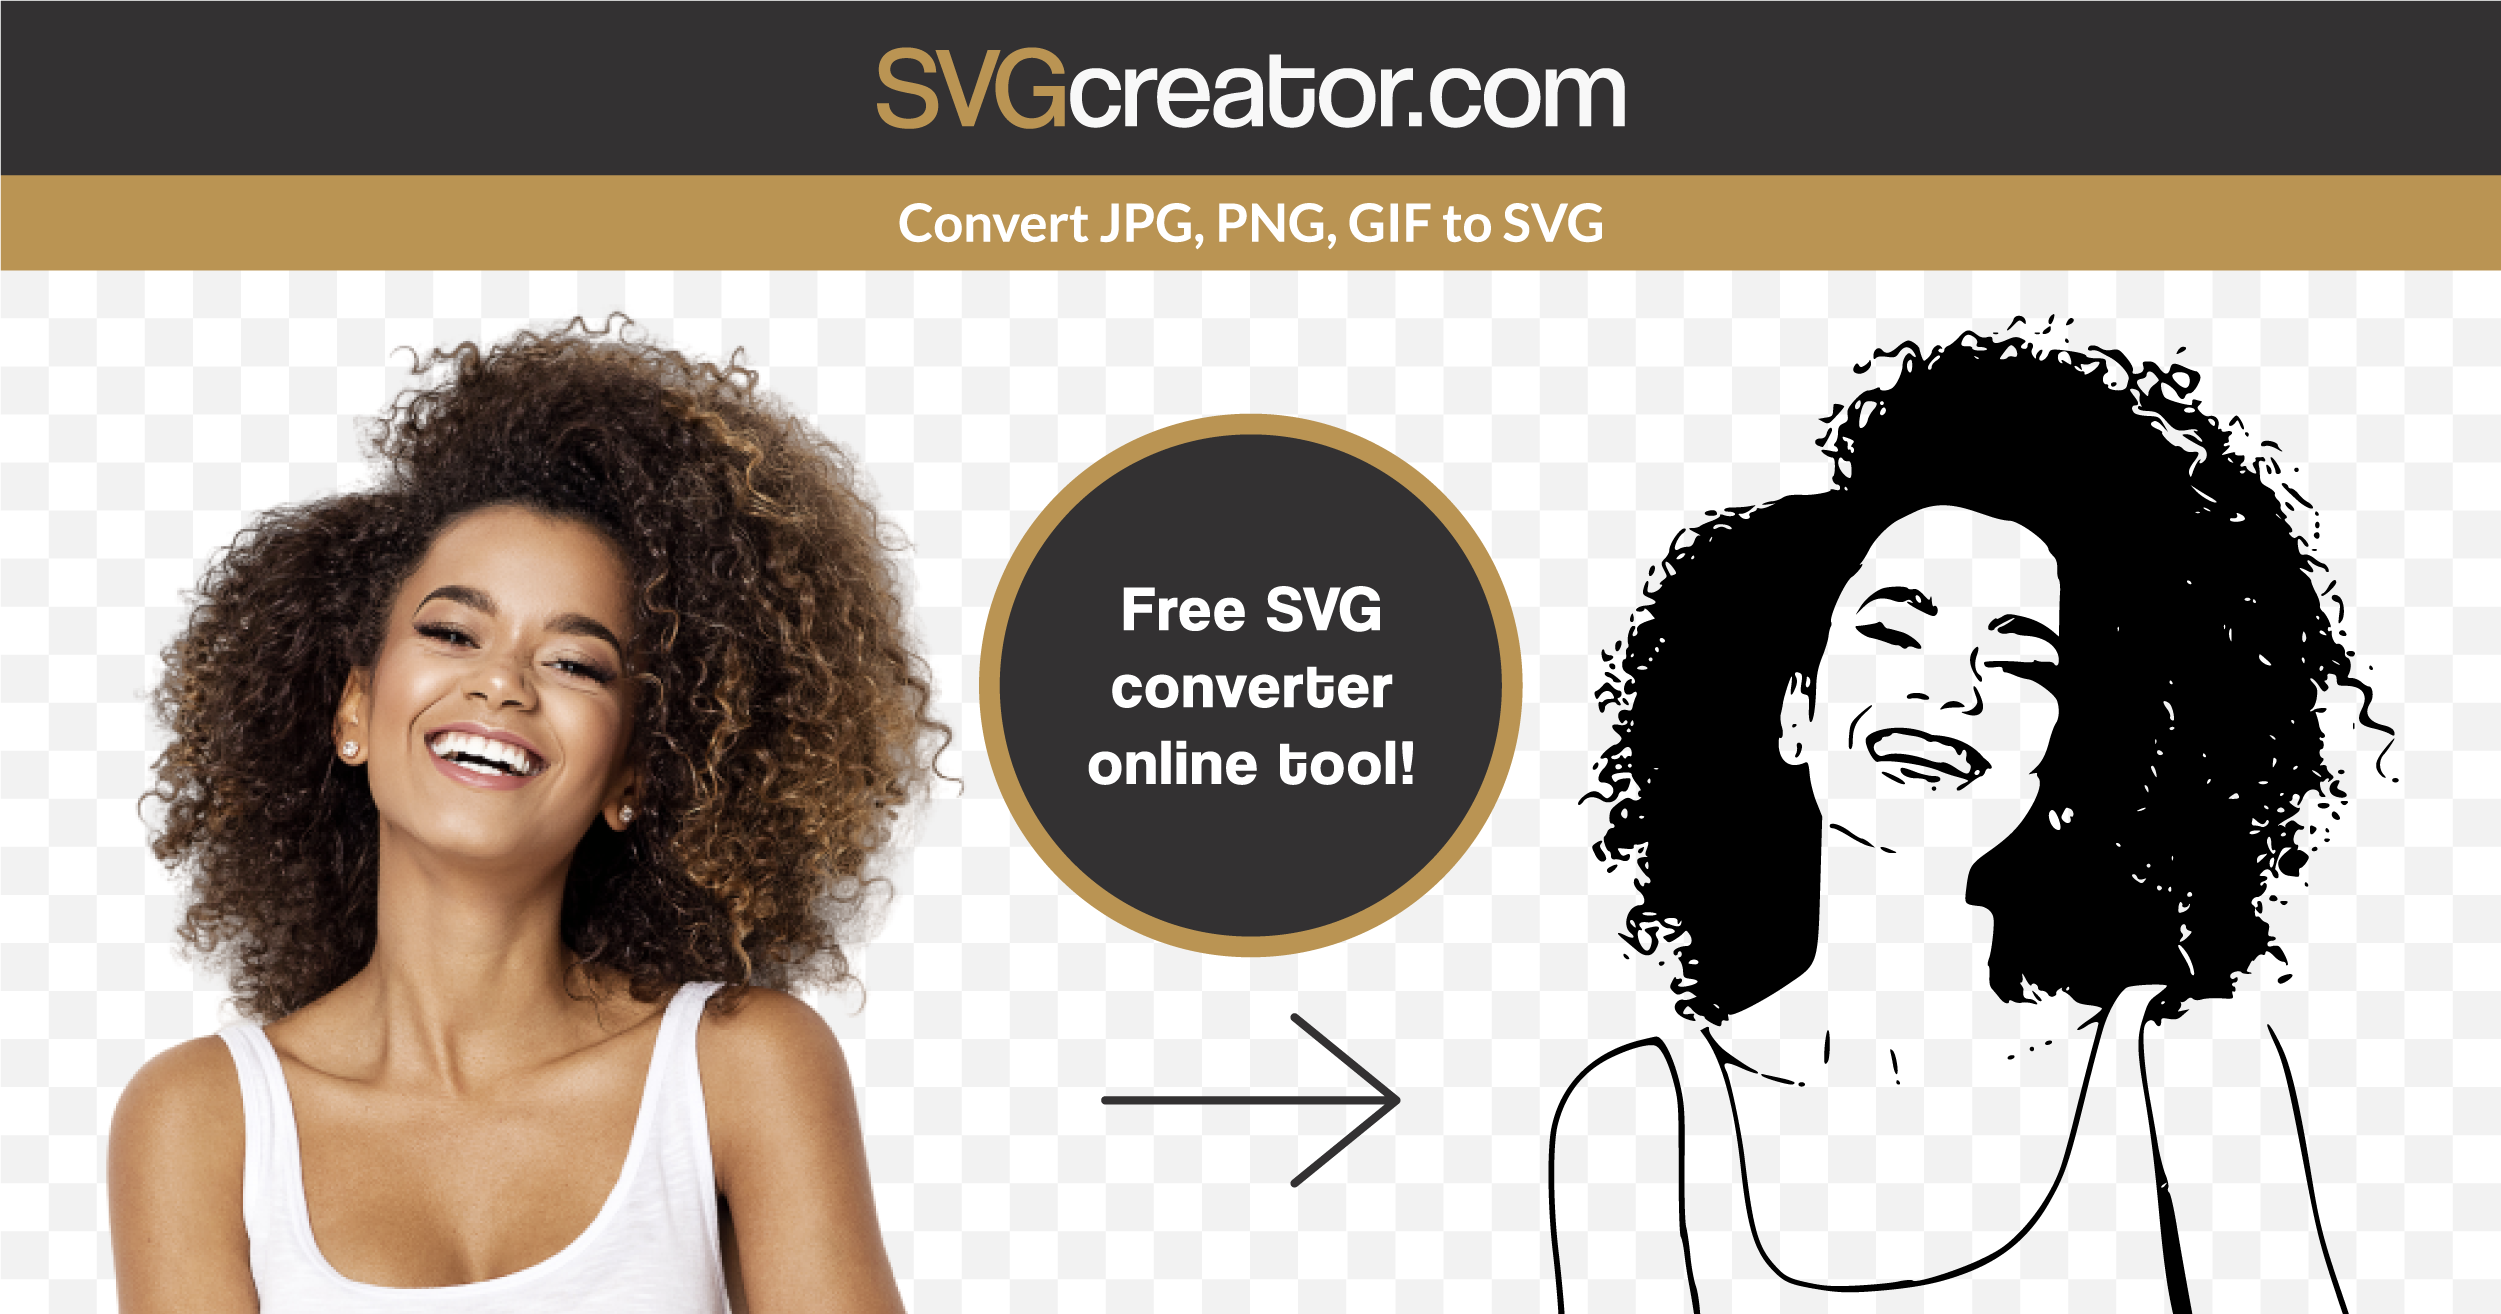 Easily convert your image to SVG in one click with this